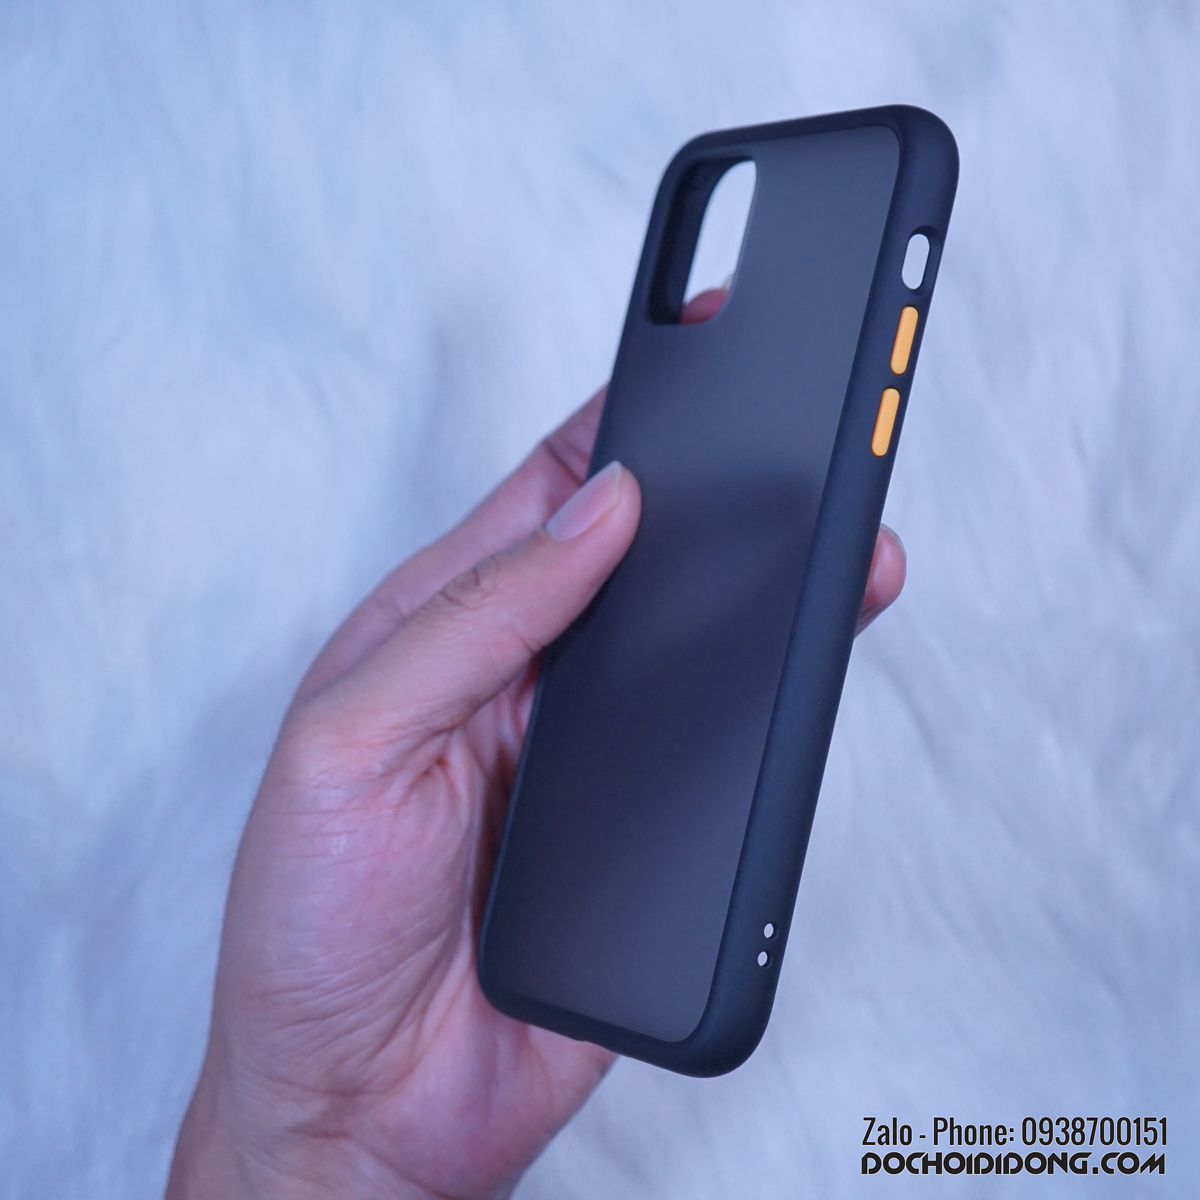 Ốp lưng iPhone 11 Pro Max Benks Magic Smooth 1.5mm